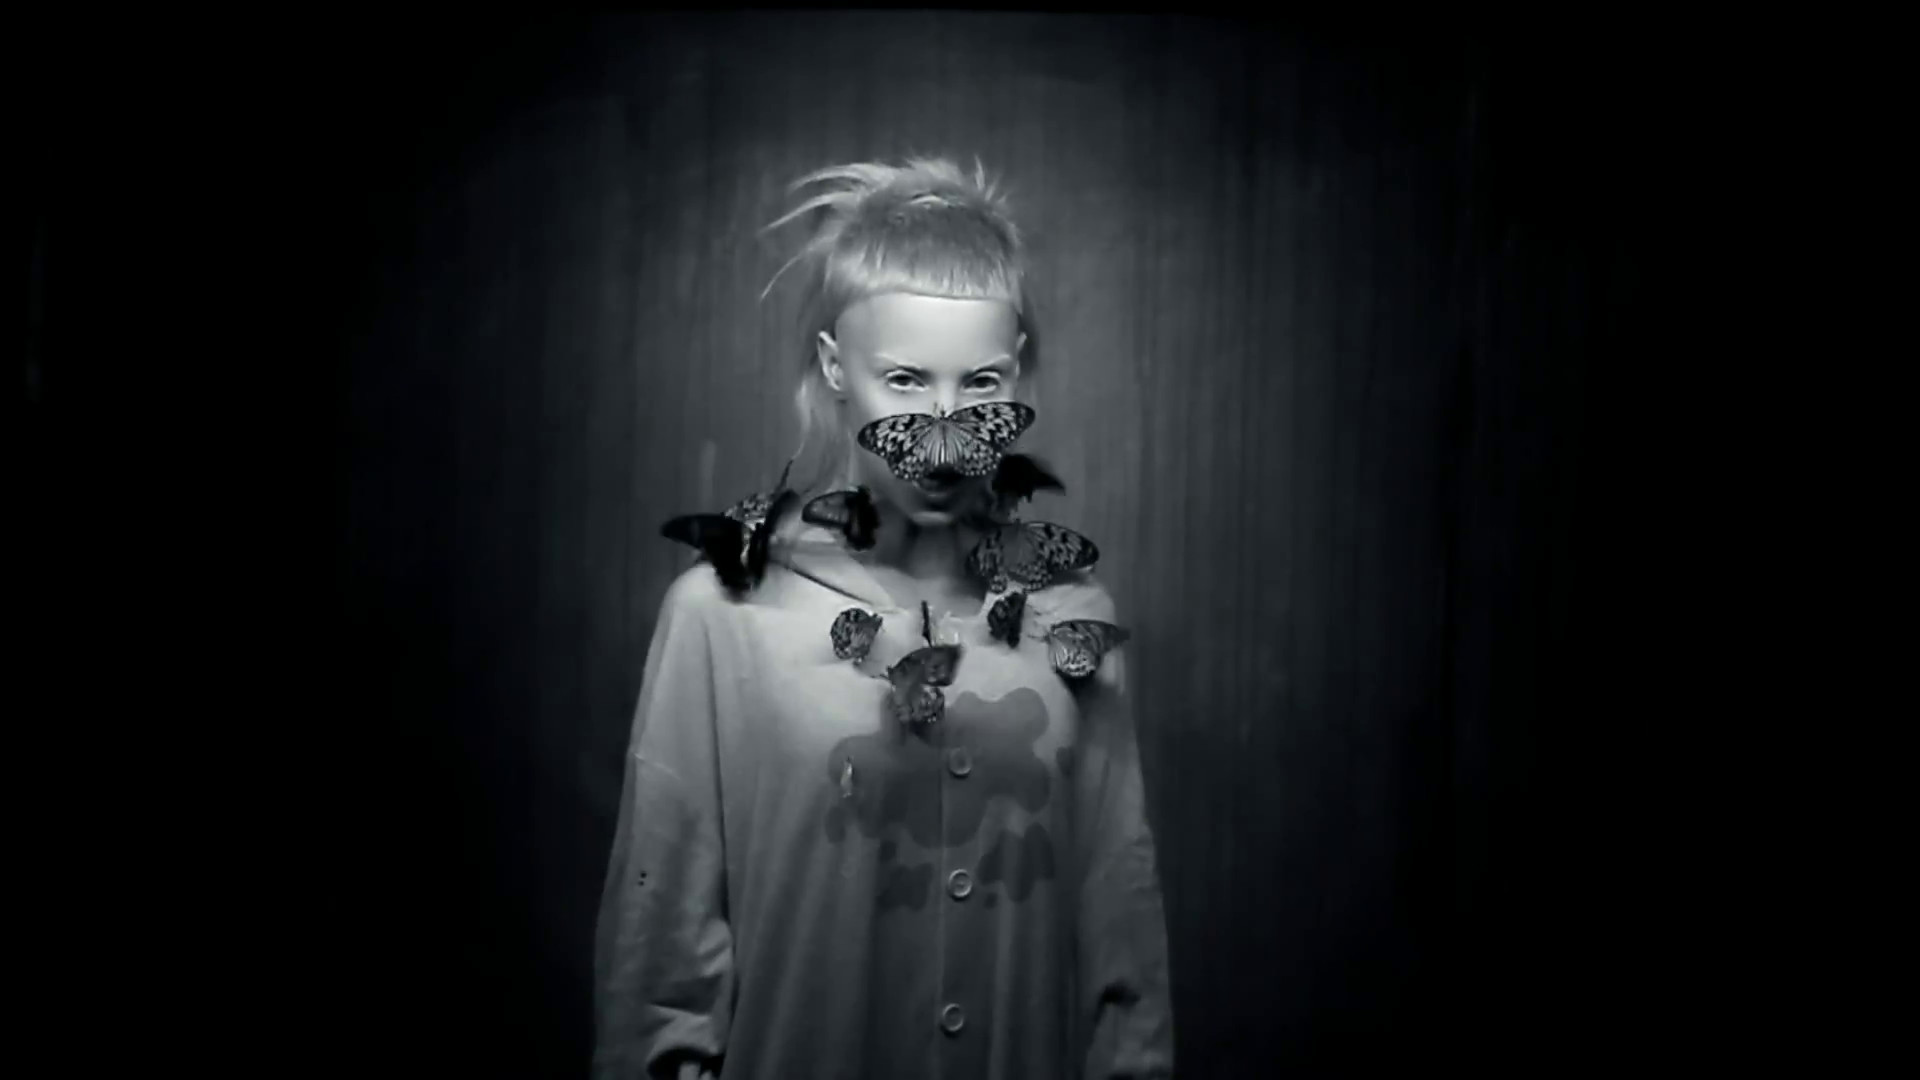 1920x1080 die antwoord wallpapers hd - photo #4. USB Disk Storage Format Tool  Freeware NL download